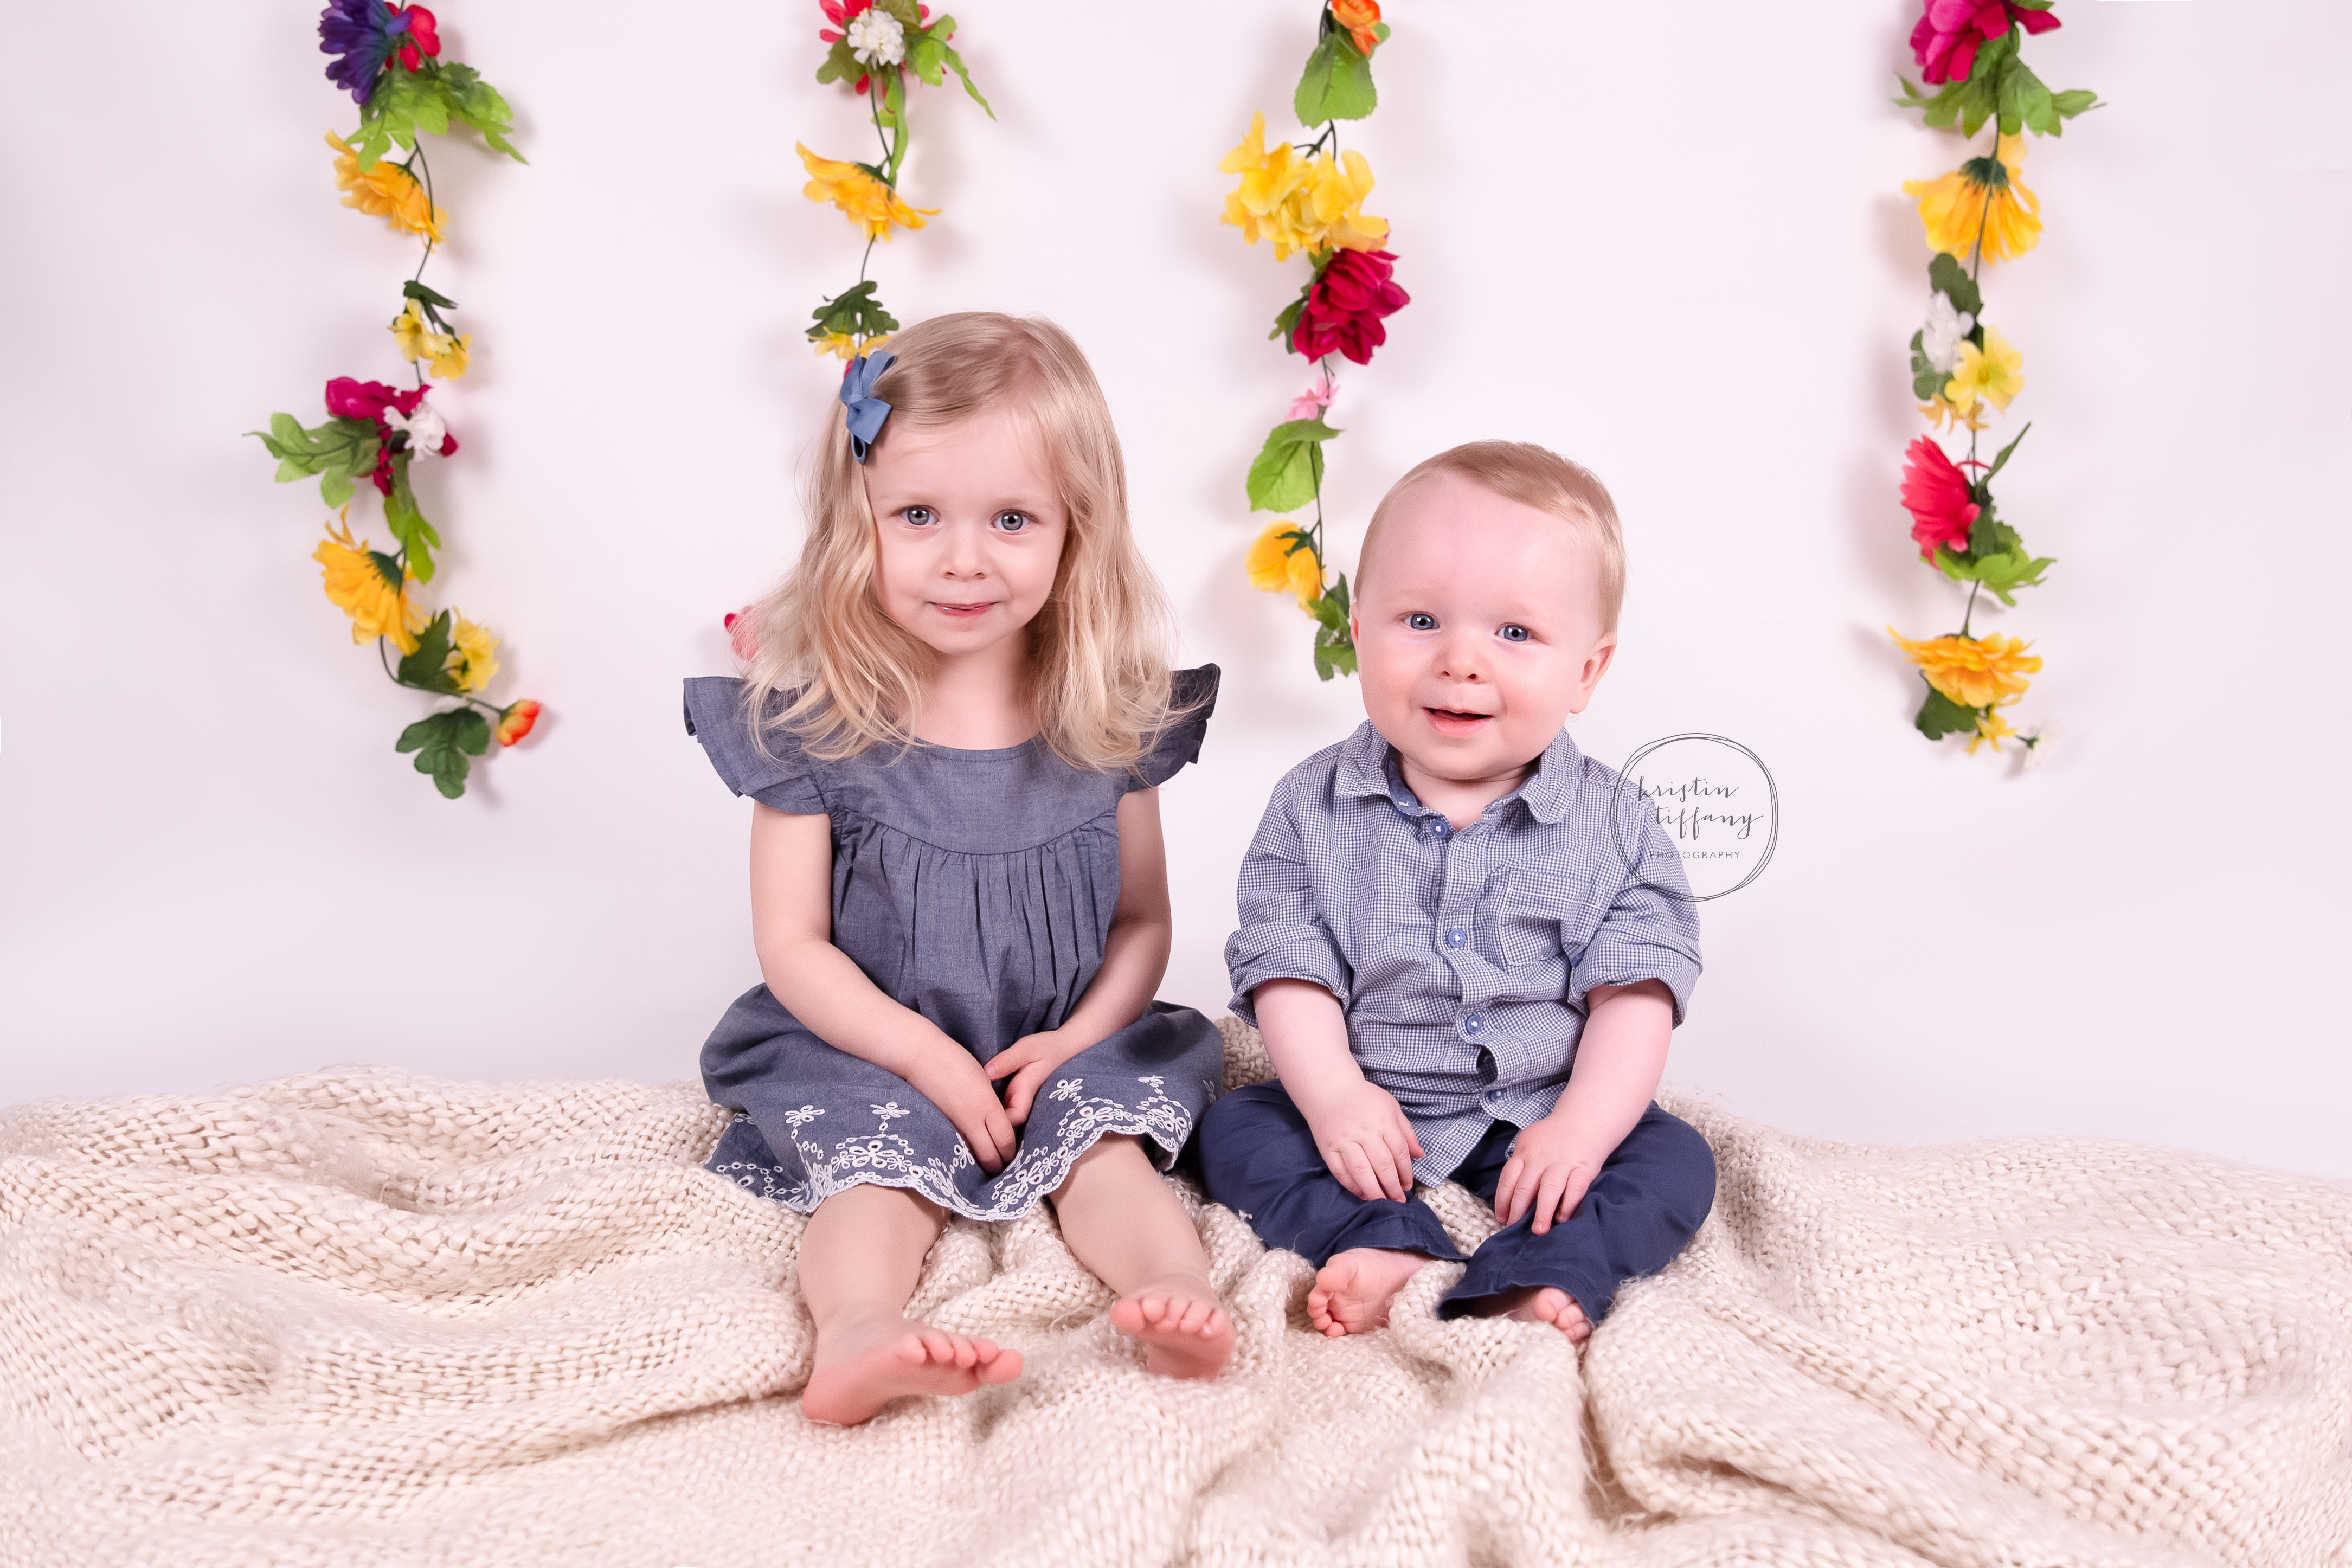 a photo from a mother's day photo shoot